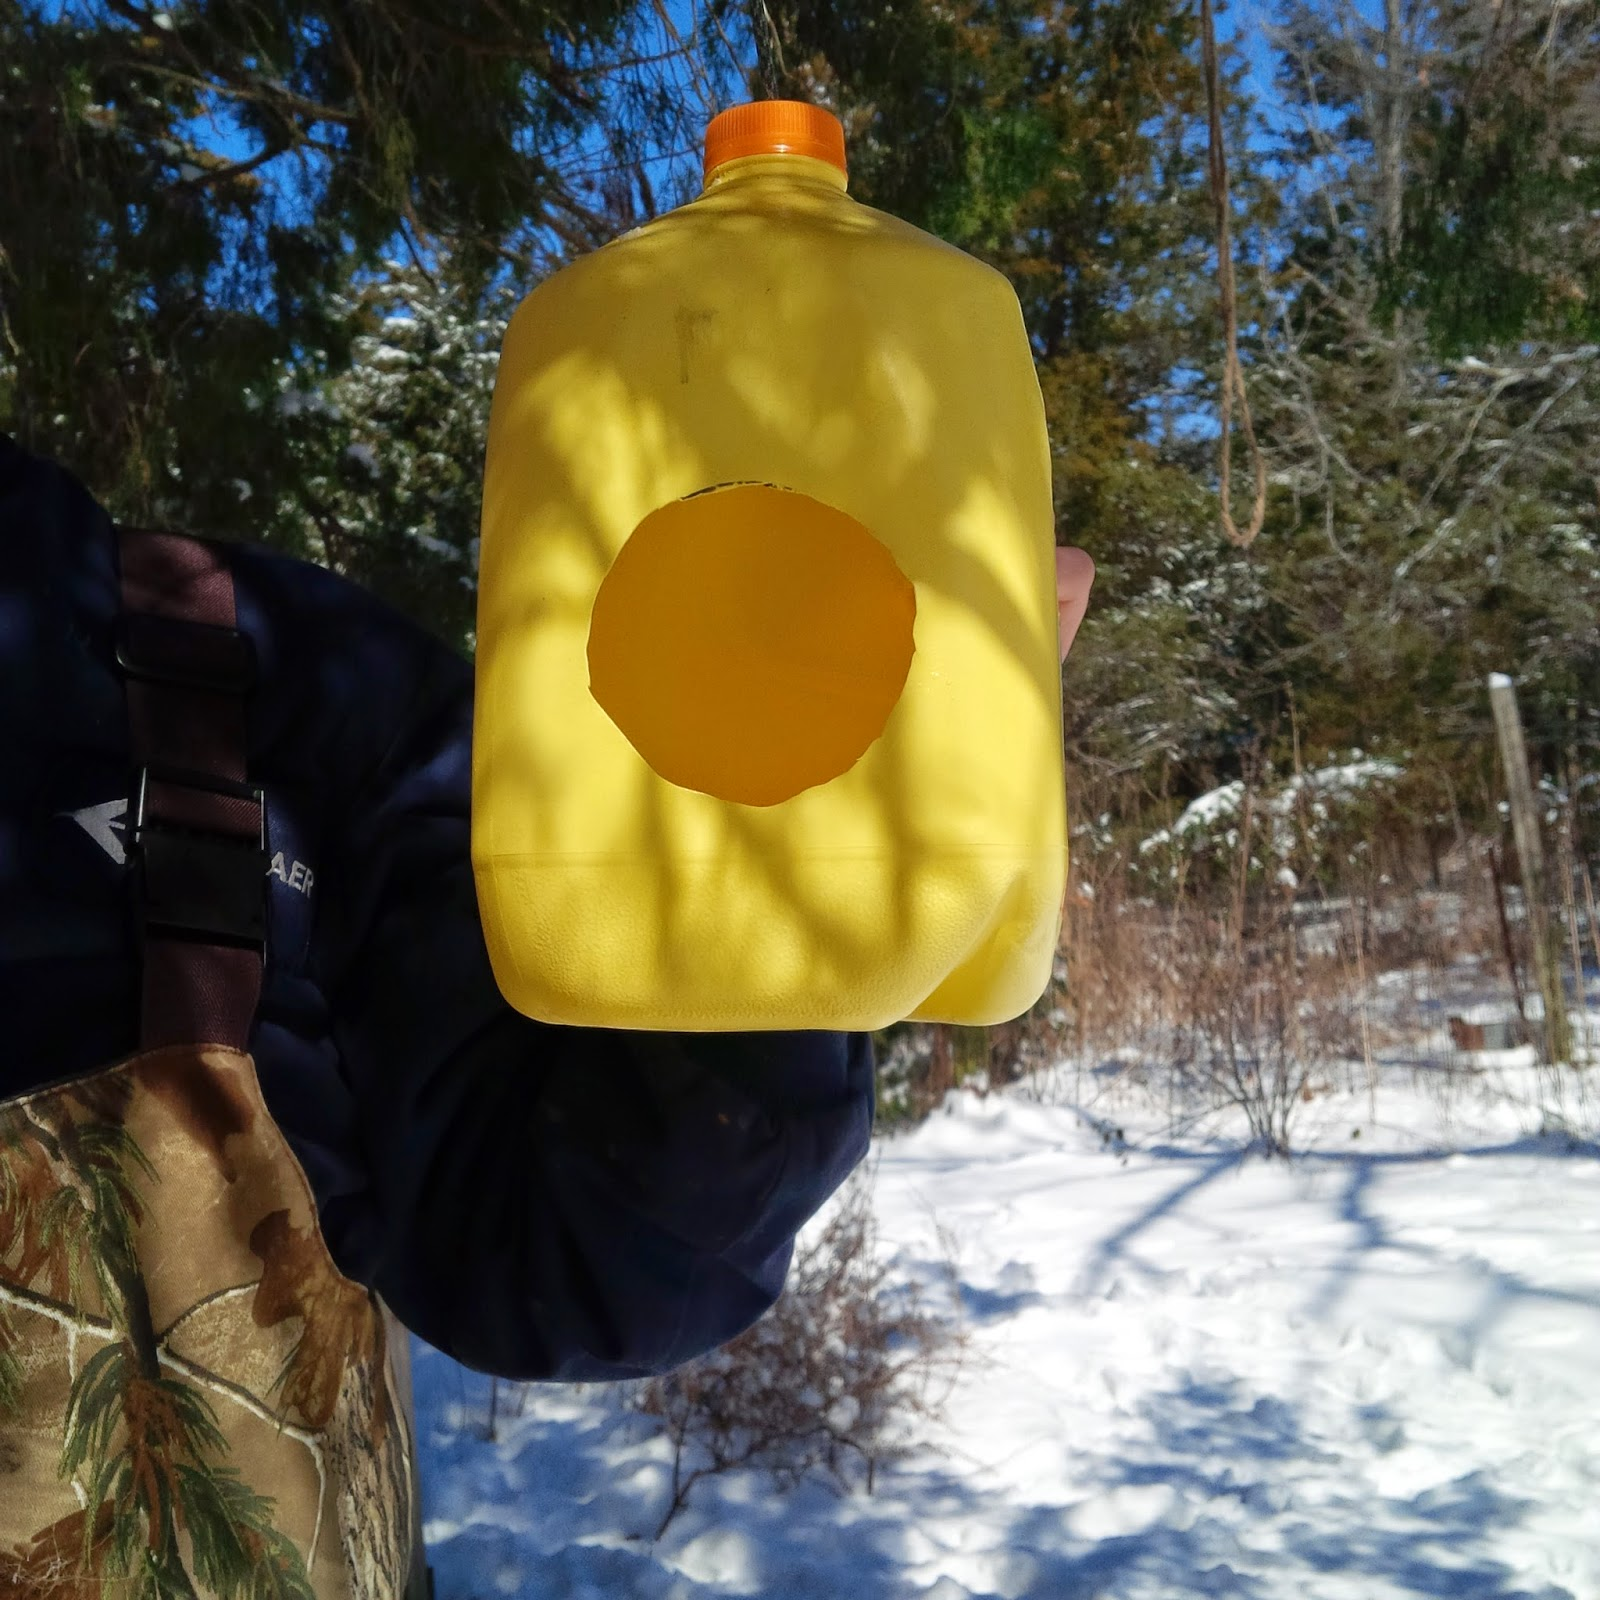 hanging the milk jug bird feeder from a branch